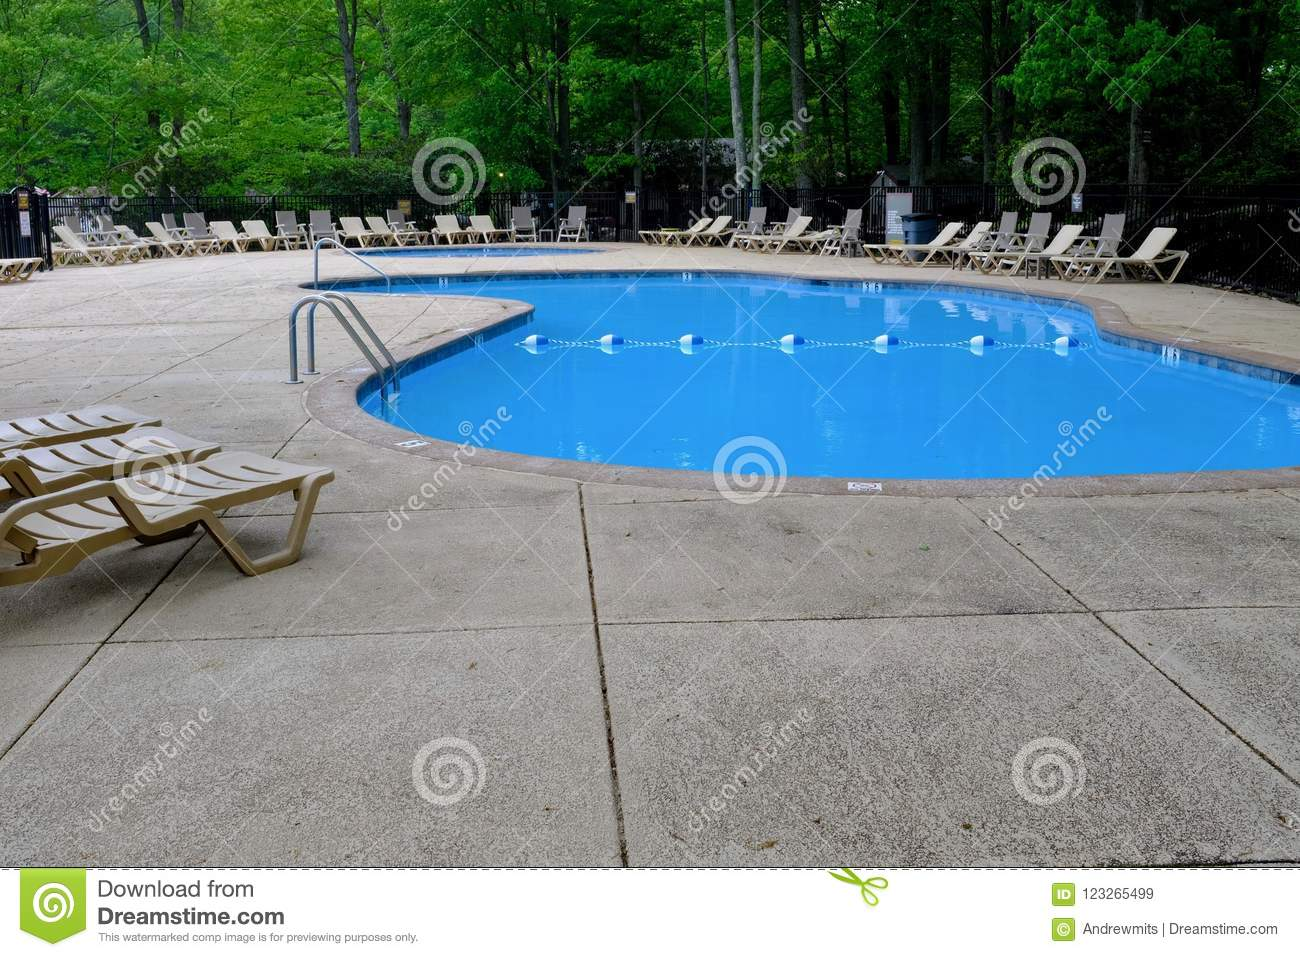 Outdoor Natural Gas Fire Pit Table, Pool Deck And Lounge Chairs In Green Forest Stock Image Image Of Surrounded Closed 123265499